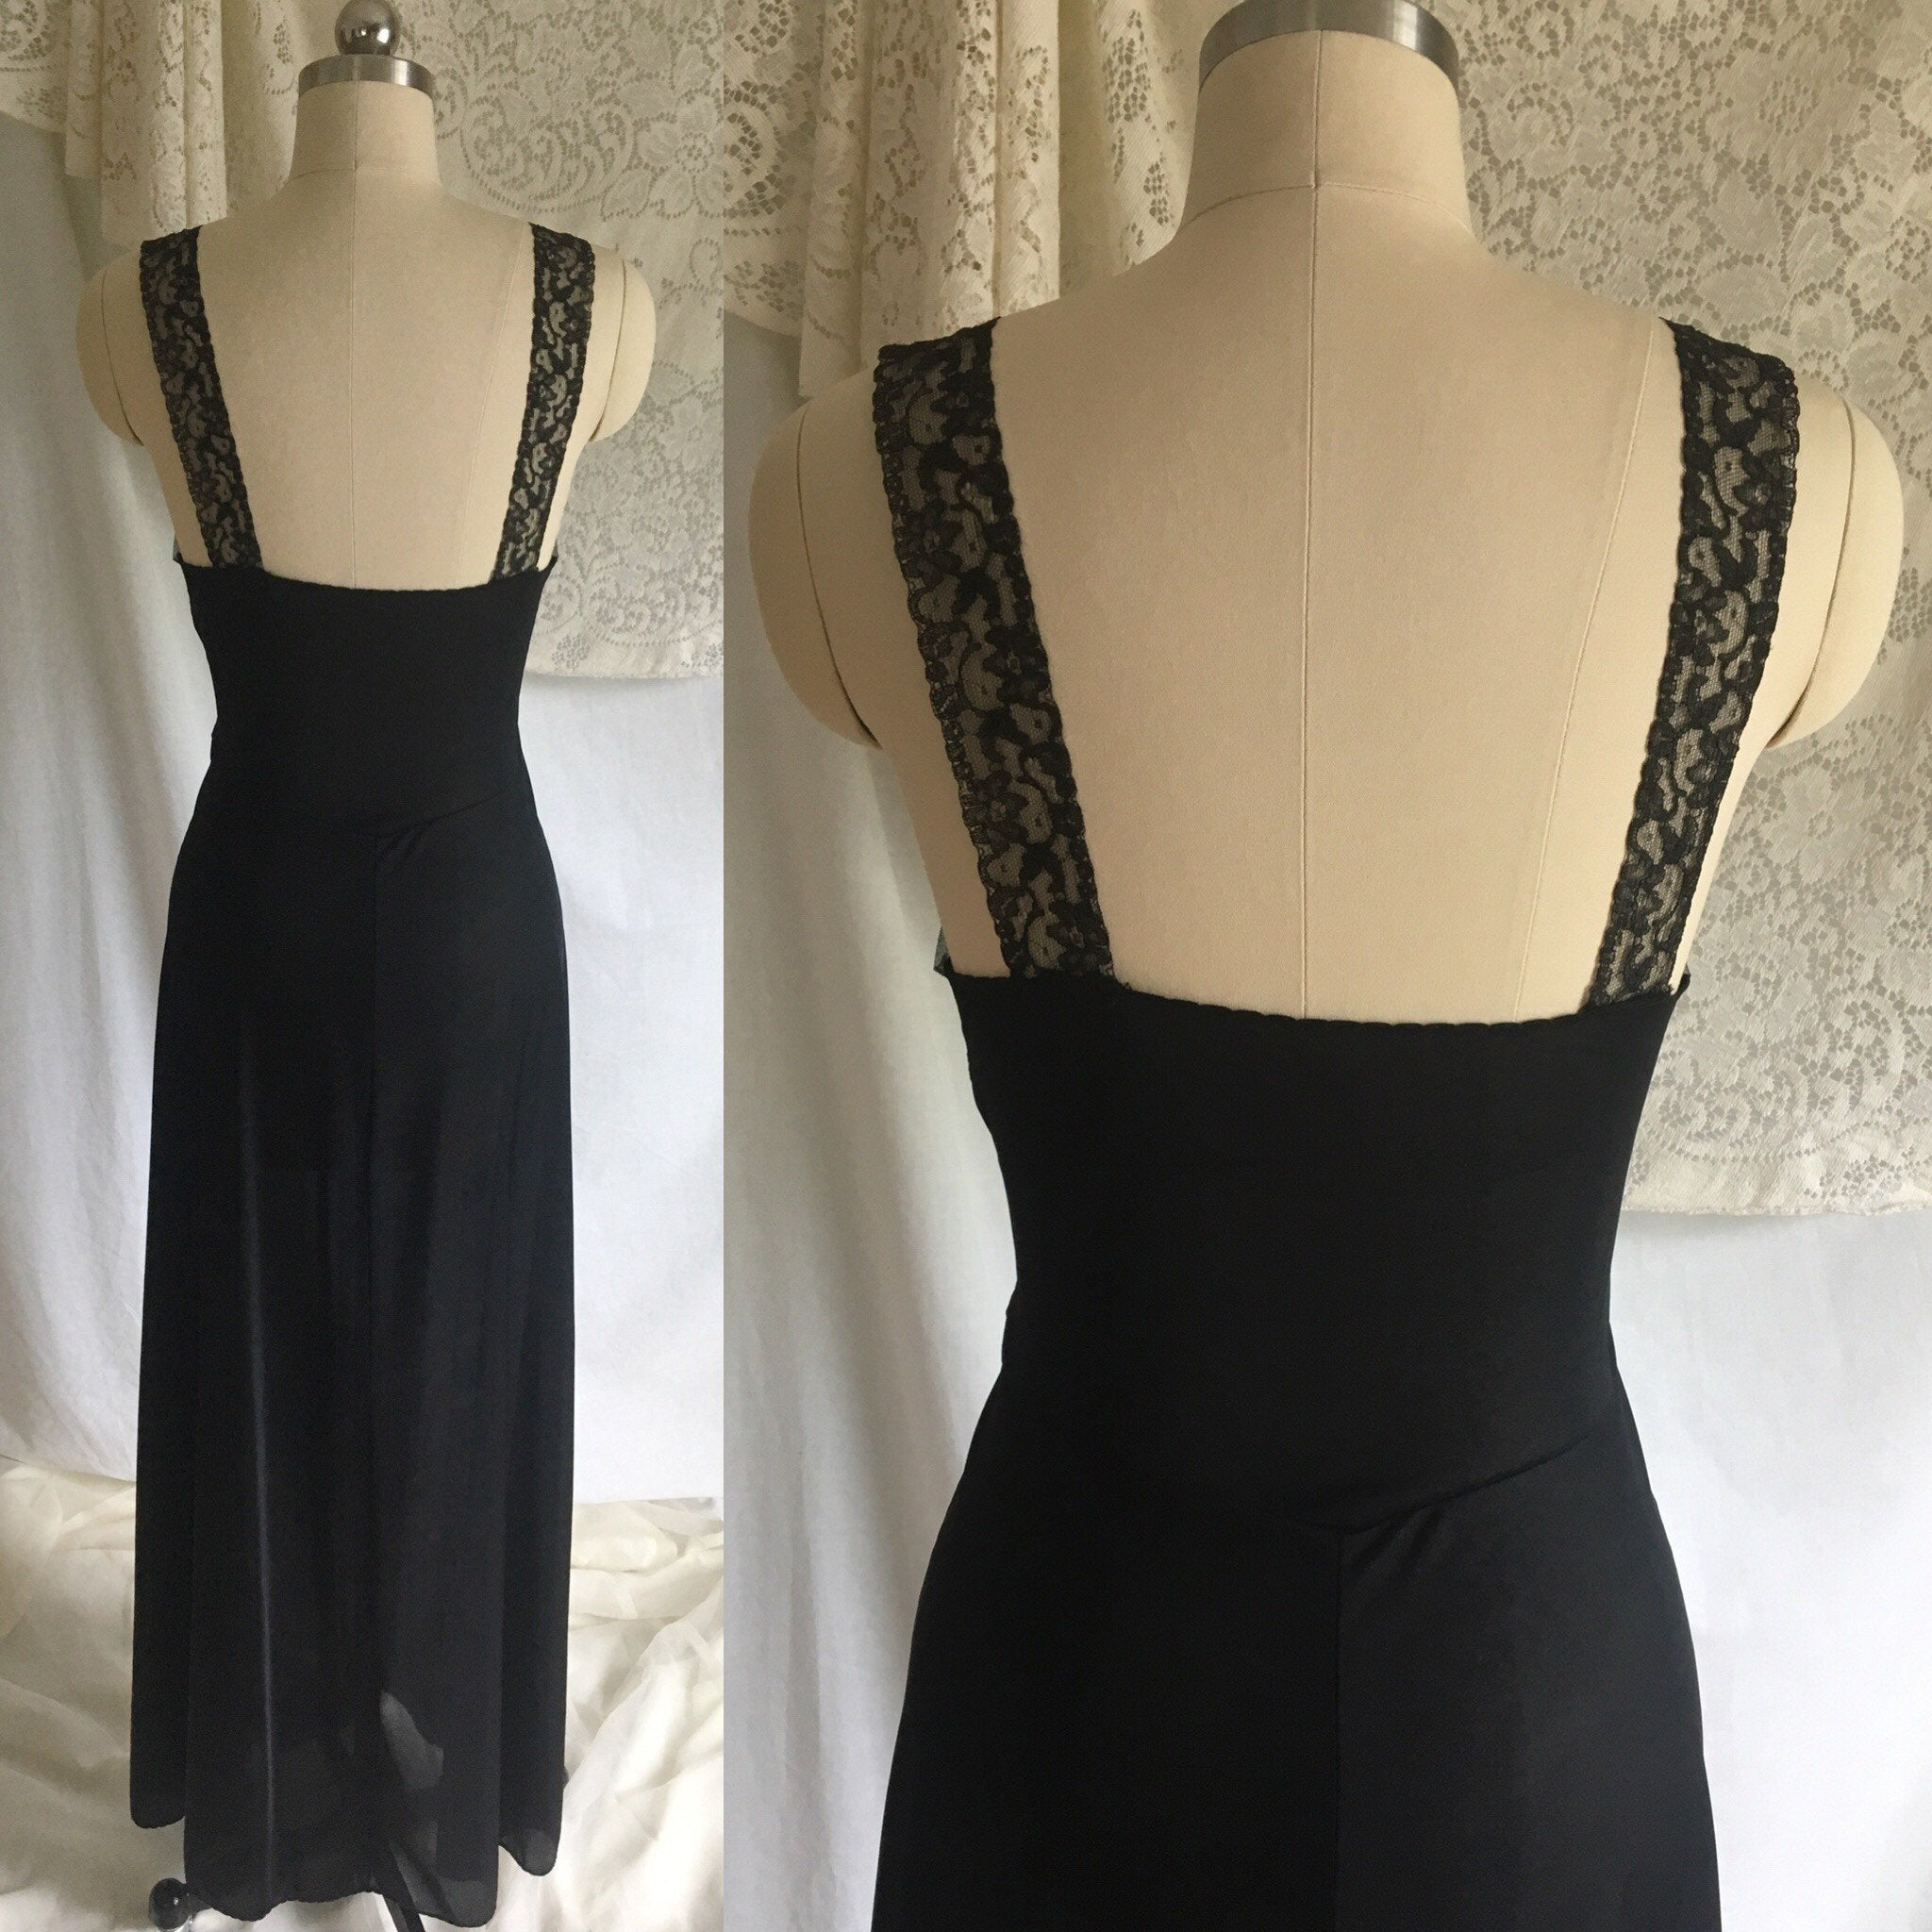 Vintage 1950's Nightgown | Black Nylon with Sheer Embroidered Tulle Bodice | Bias Cut Lingerie | Maxi Dress | Size S - Daggers & Dames